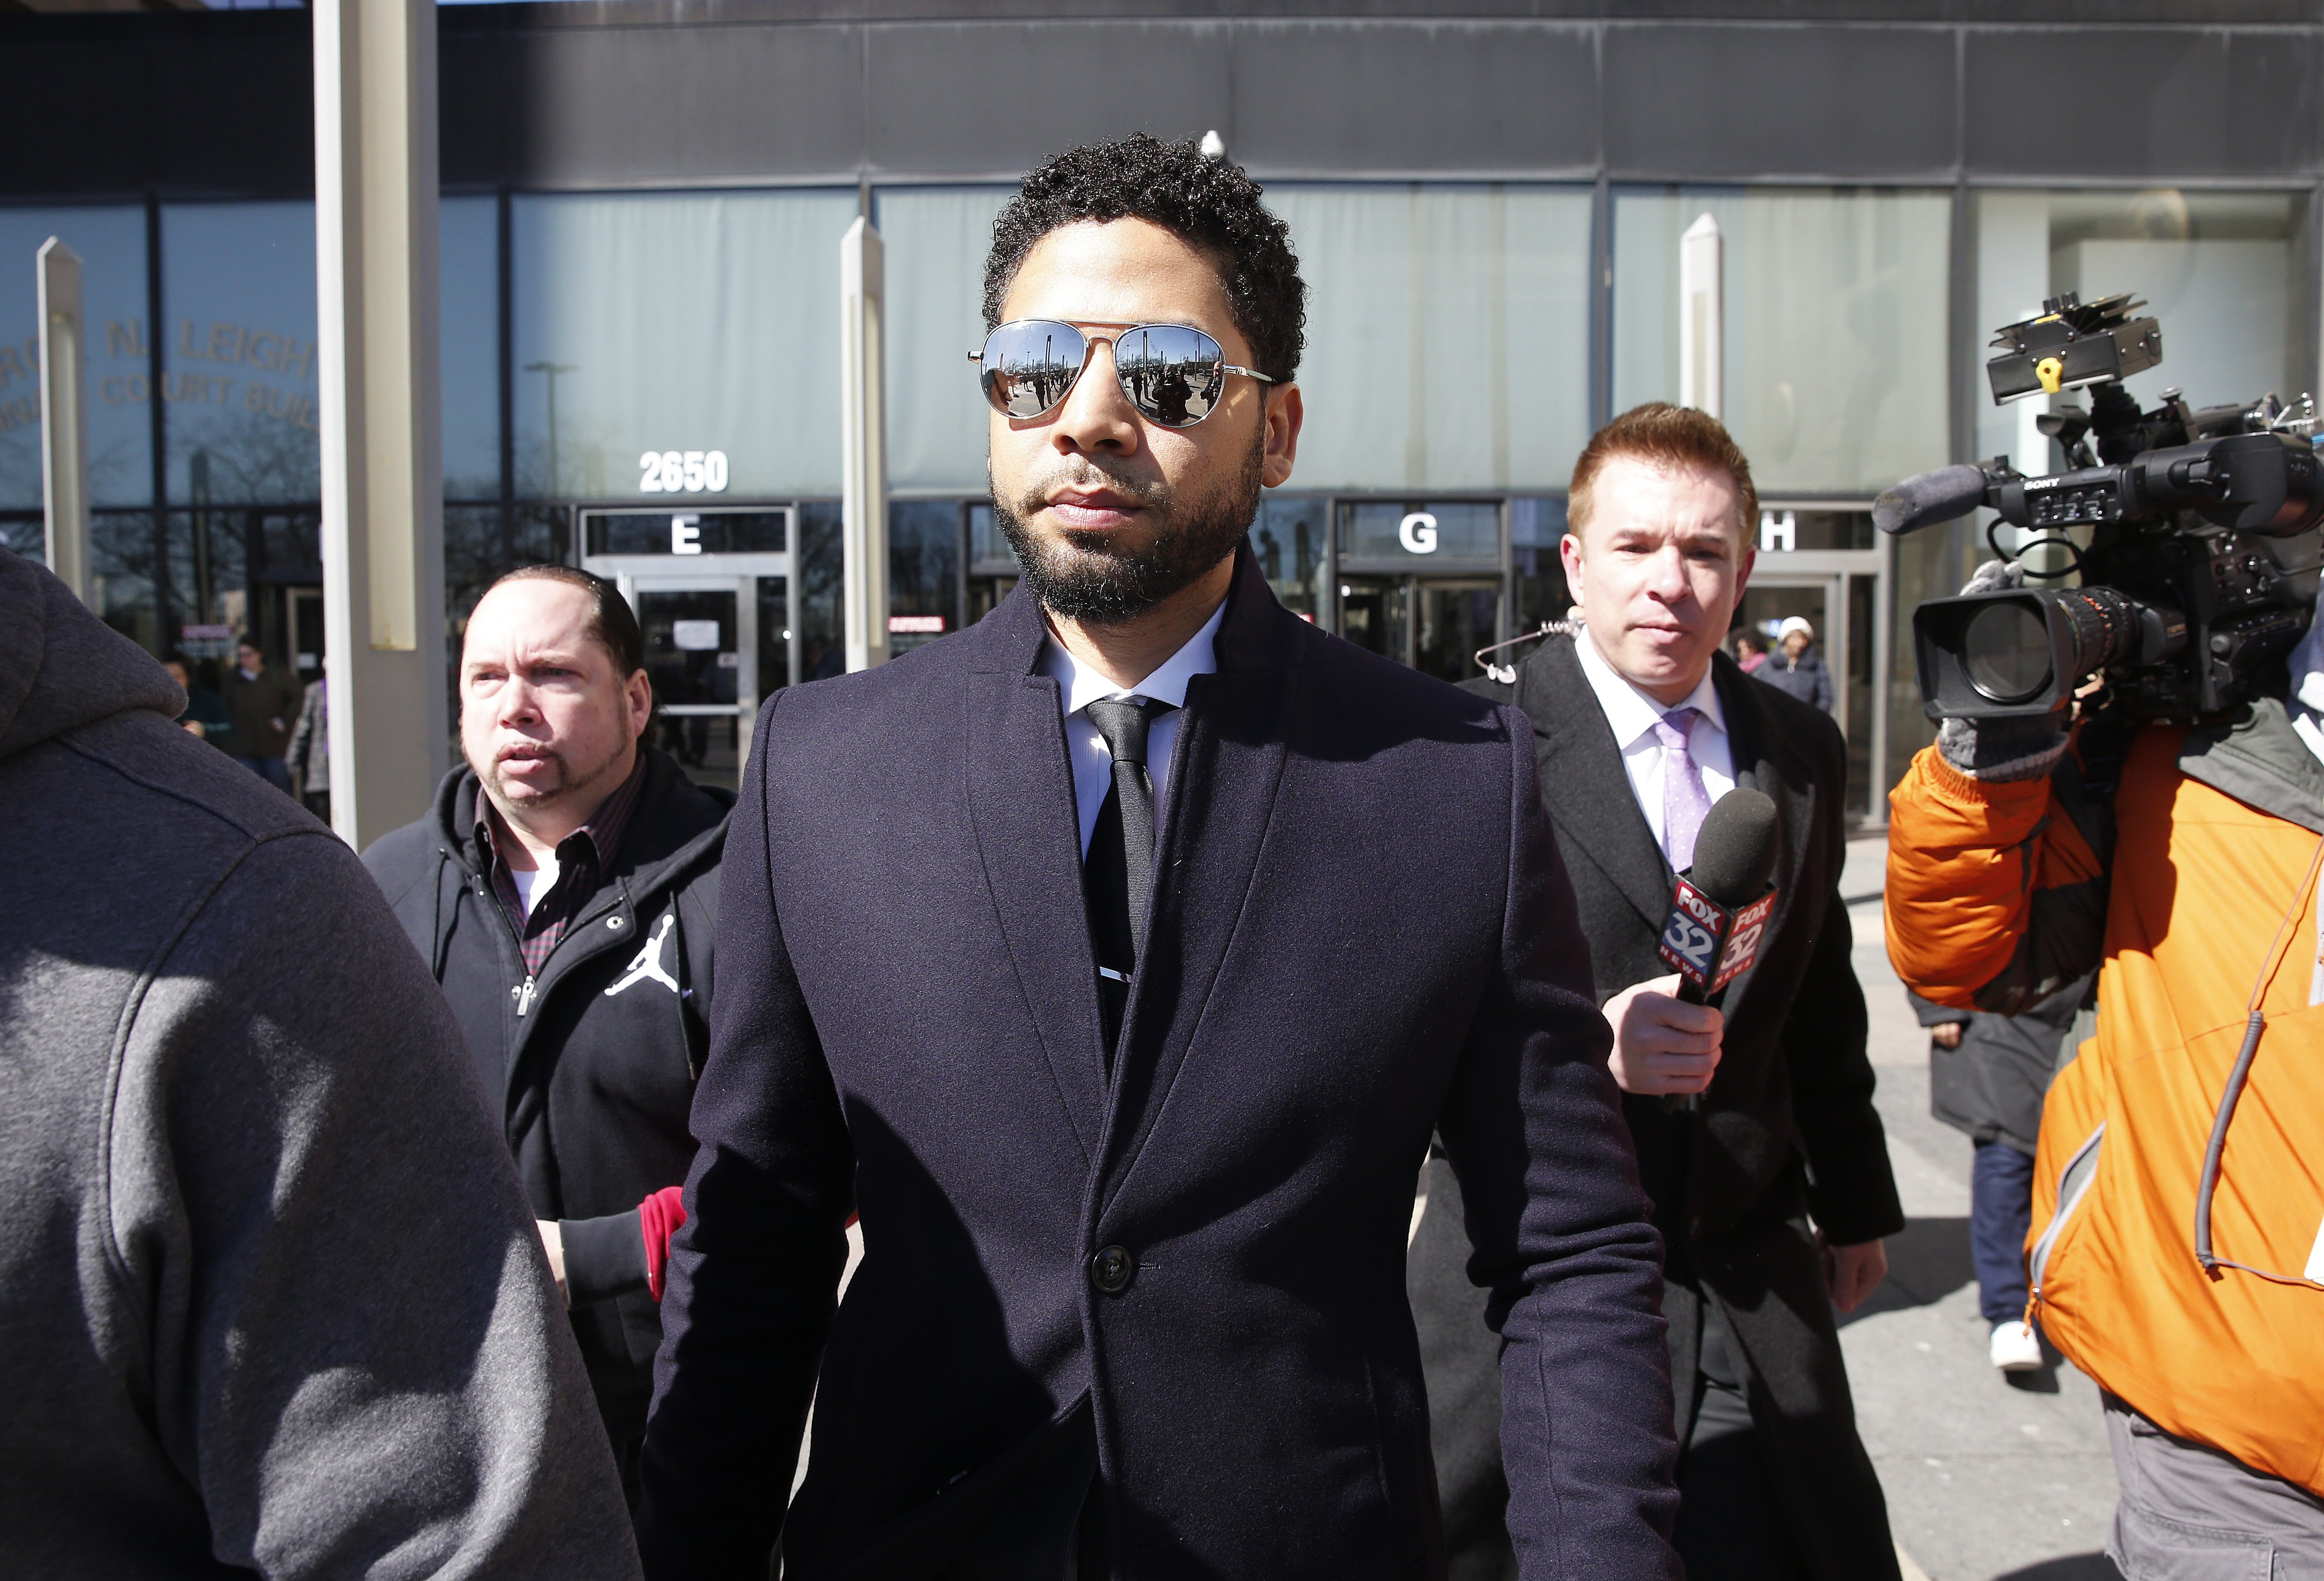 Jussie Smollett's legal team expected to file motion for expungement Thursday